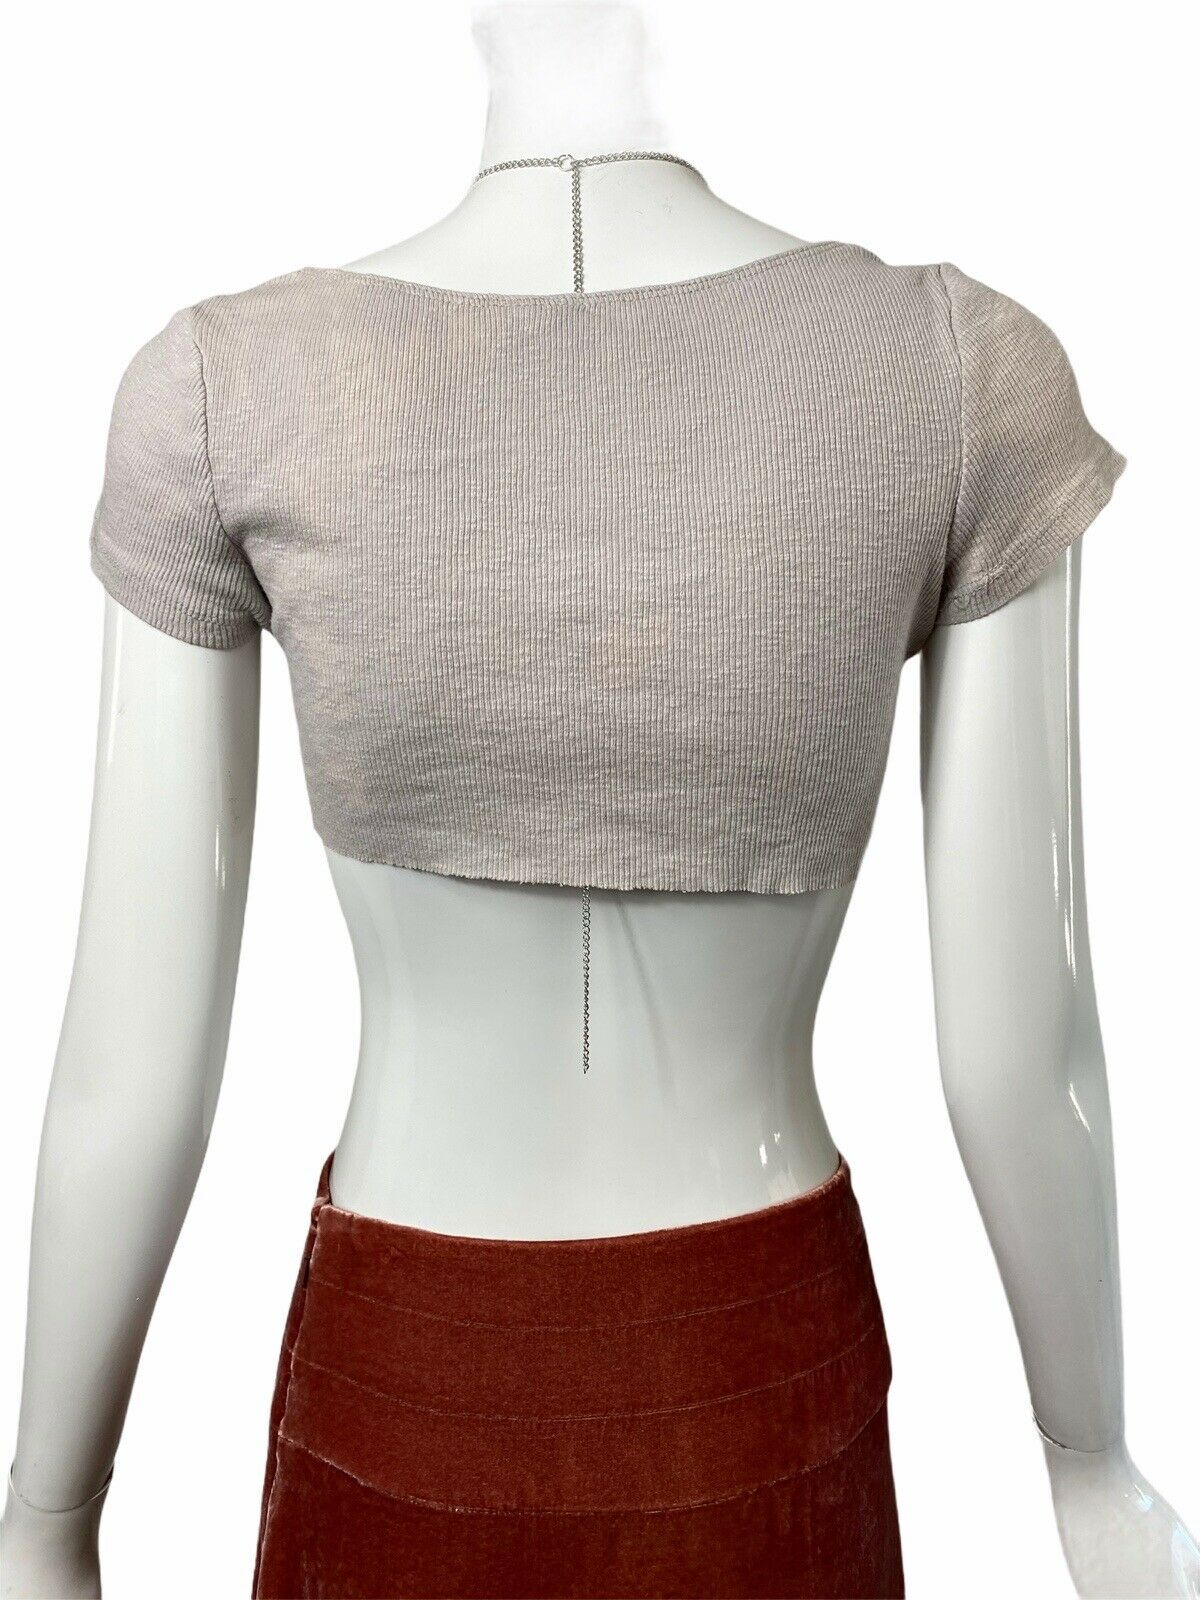 Fairycore Grunge Ribbed Crop Top Y2k 90s Aesthetic - image 4